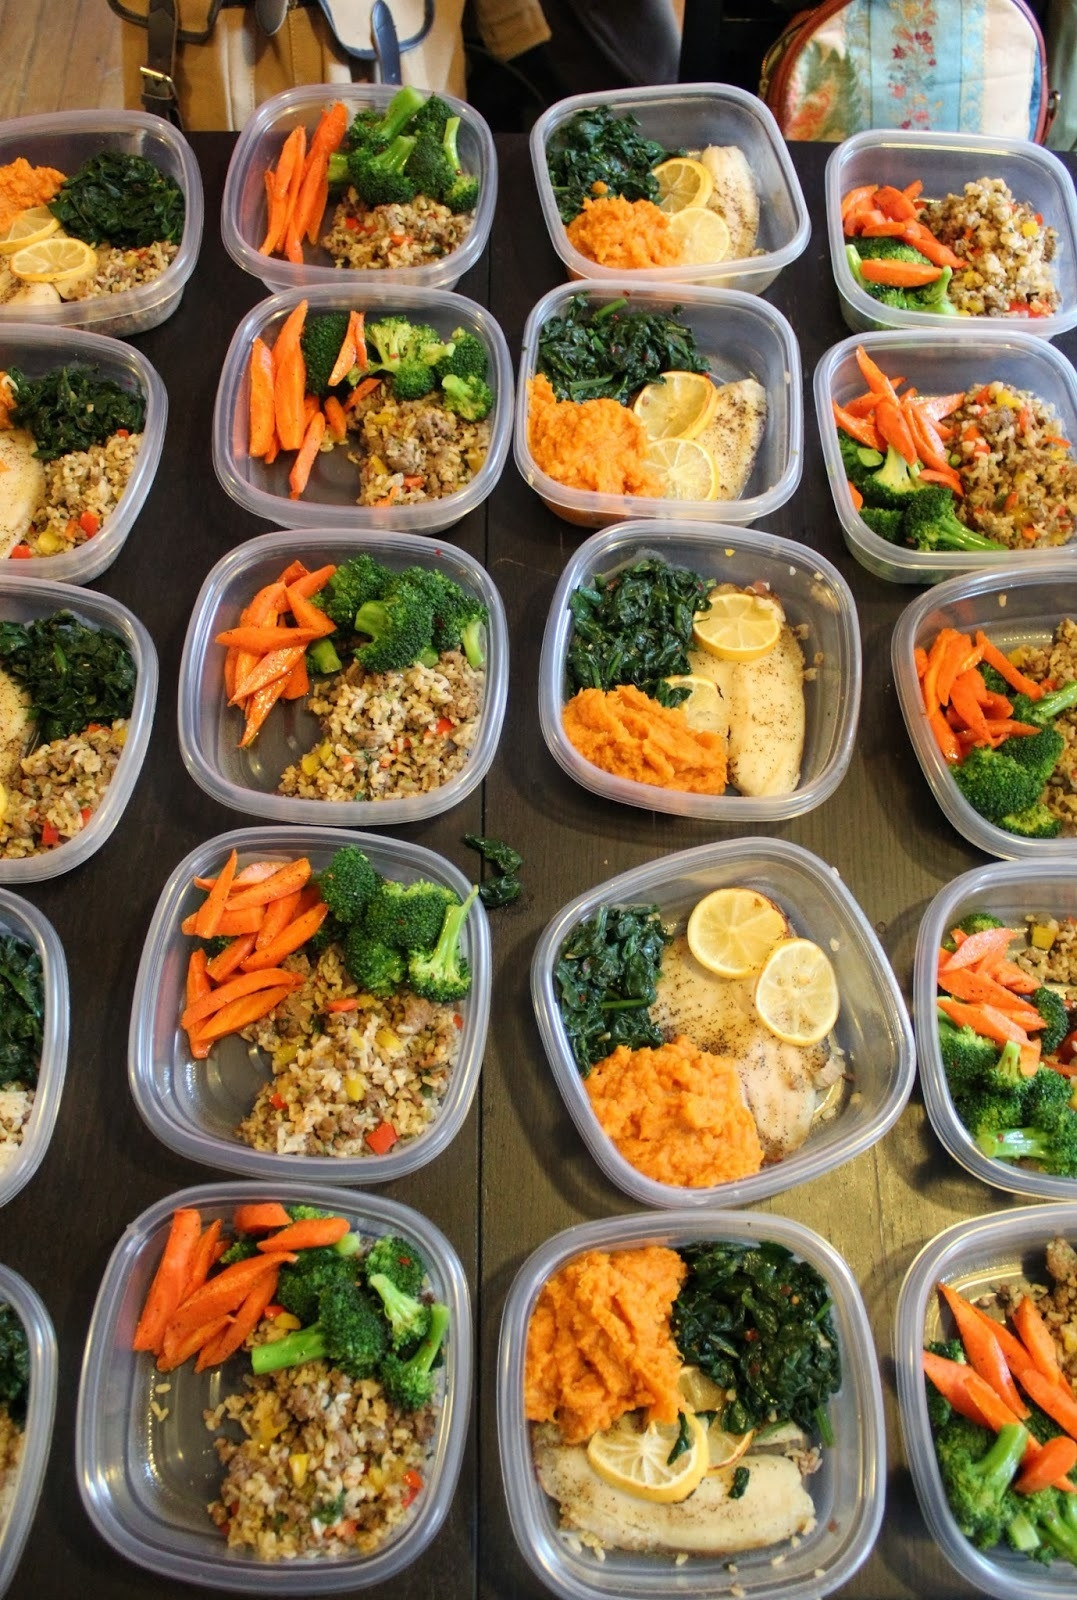 Dinner Ideas Healthy  Healthy Meal Prep Ideas For The WeekWritings and Papers